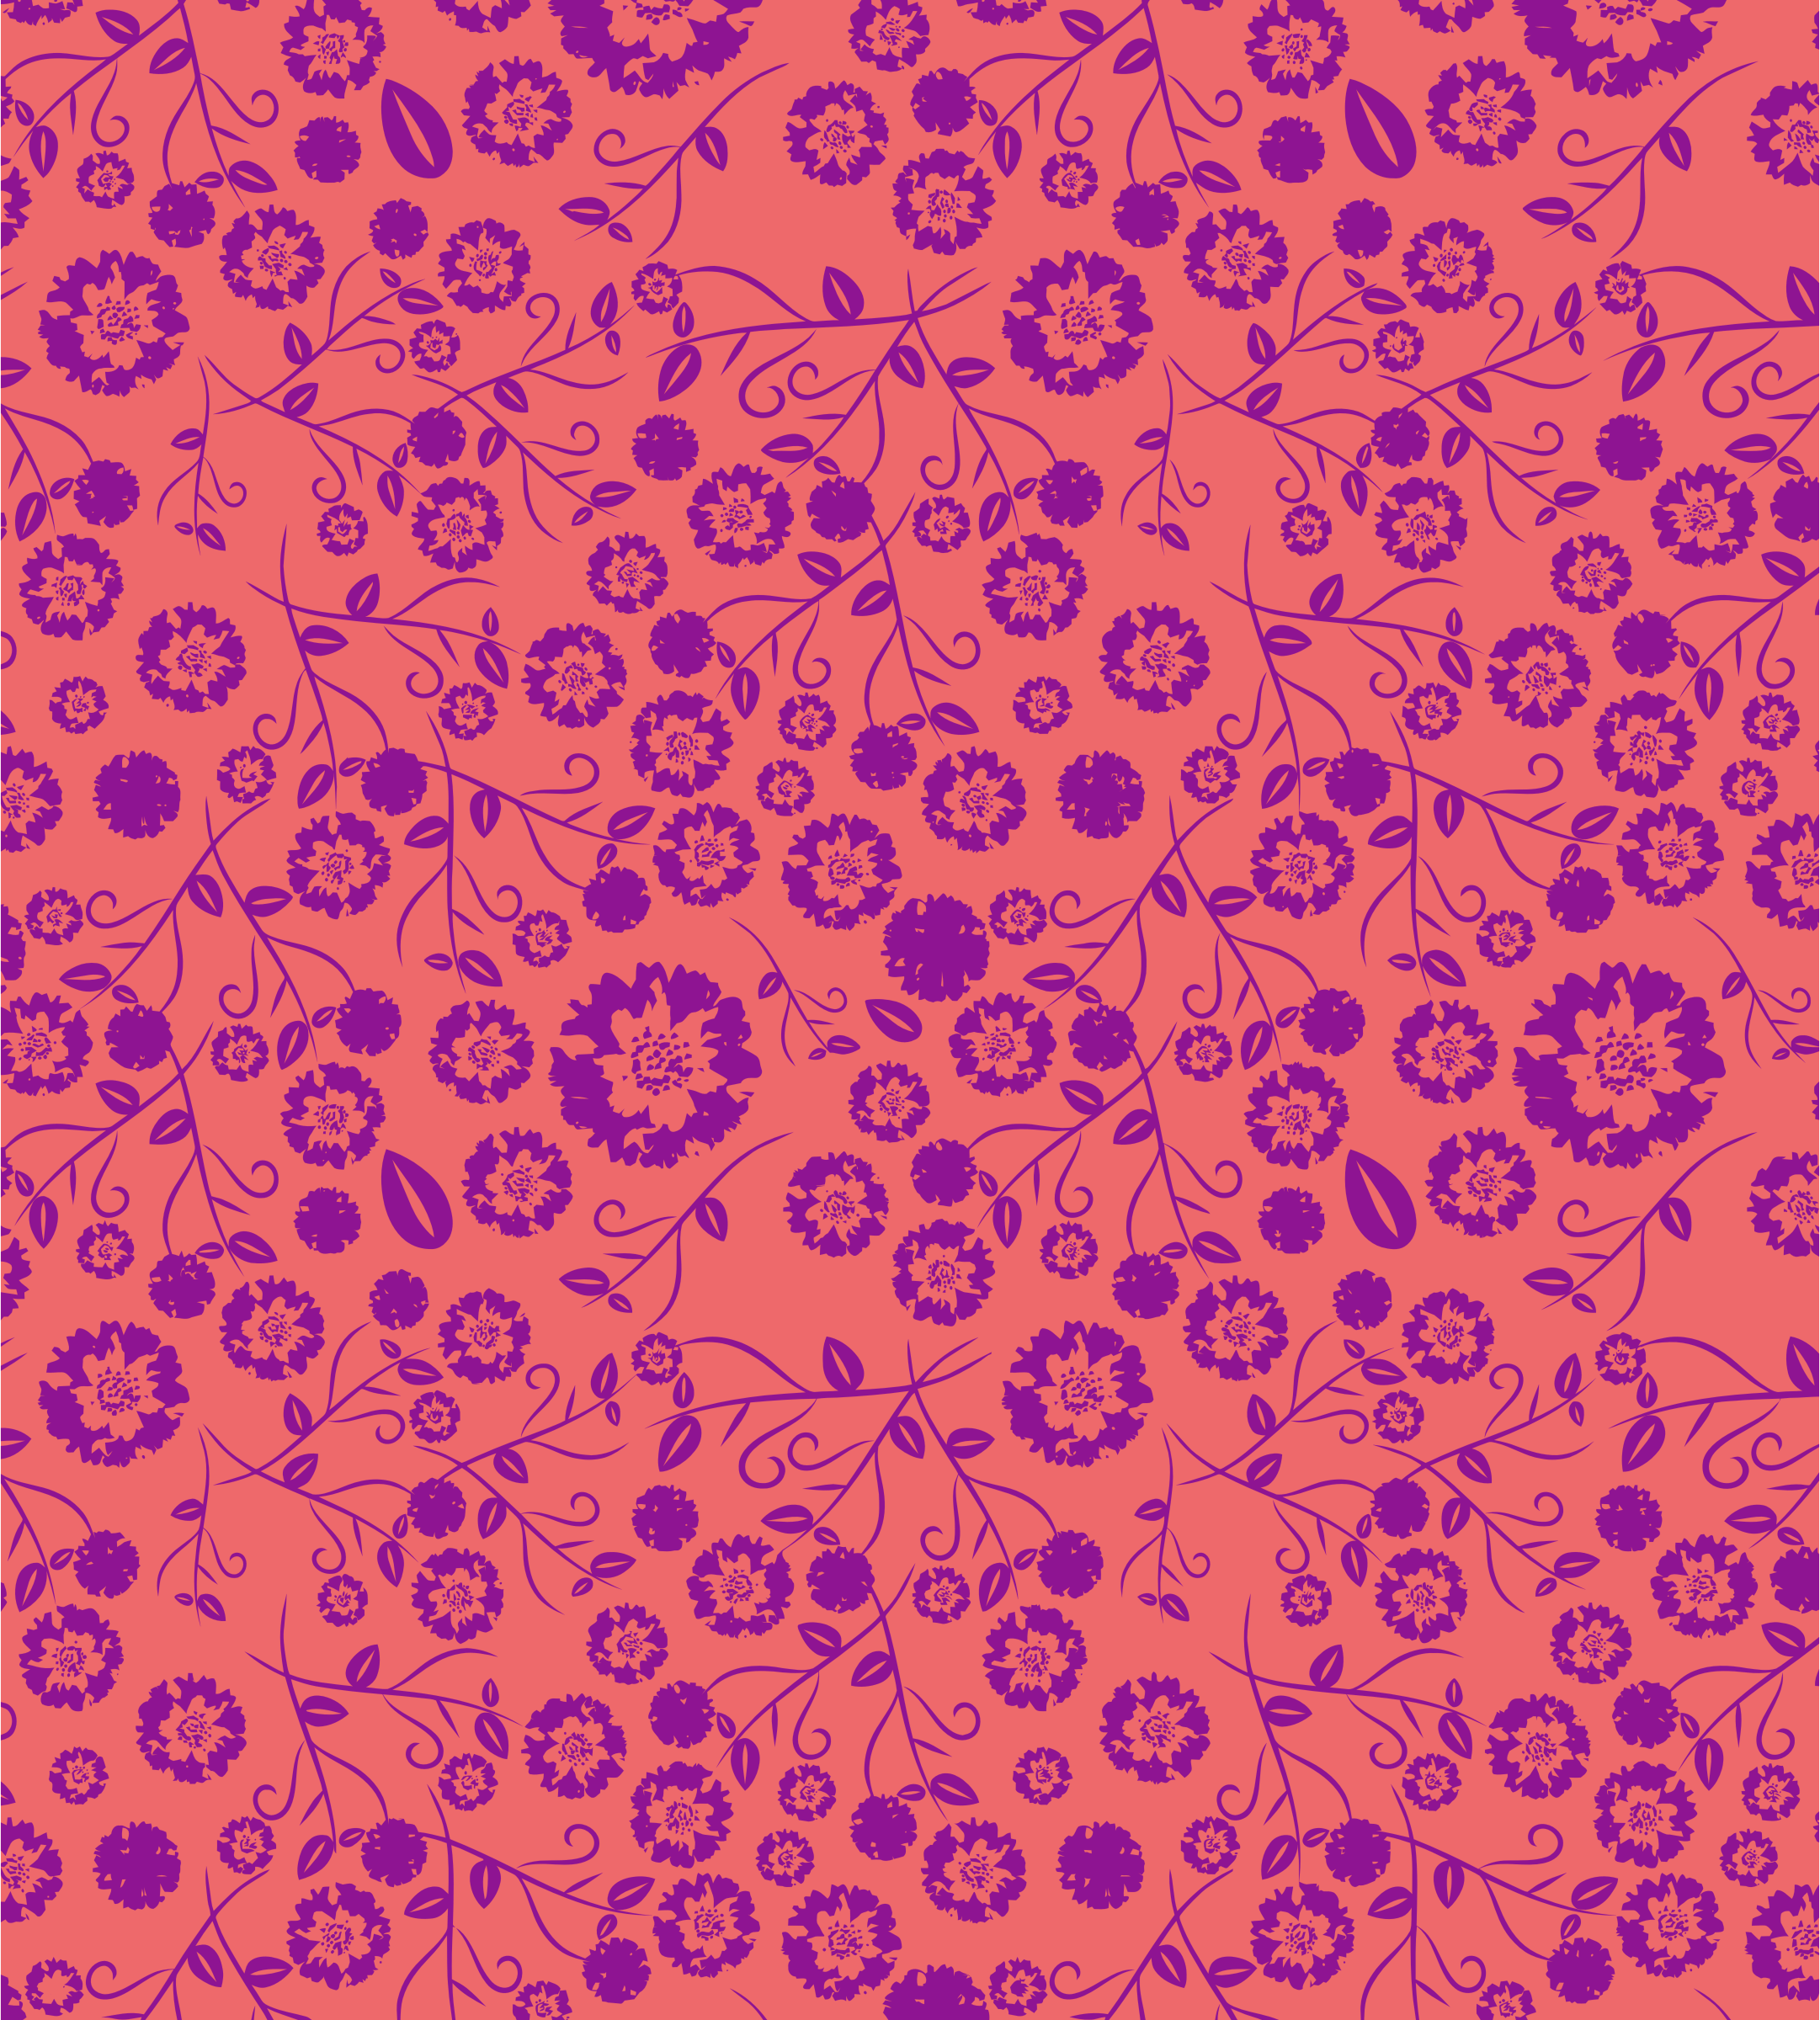 Vintage Seamless Floral Pattern by GDJ